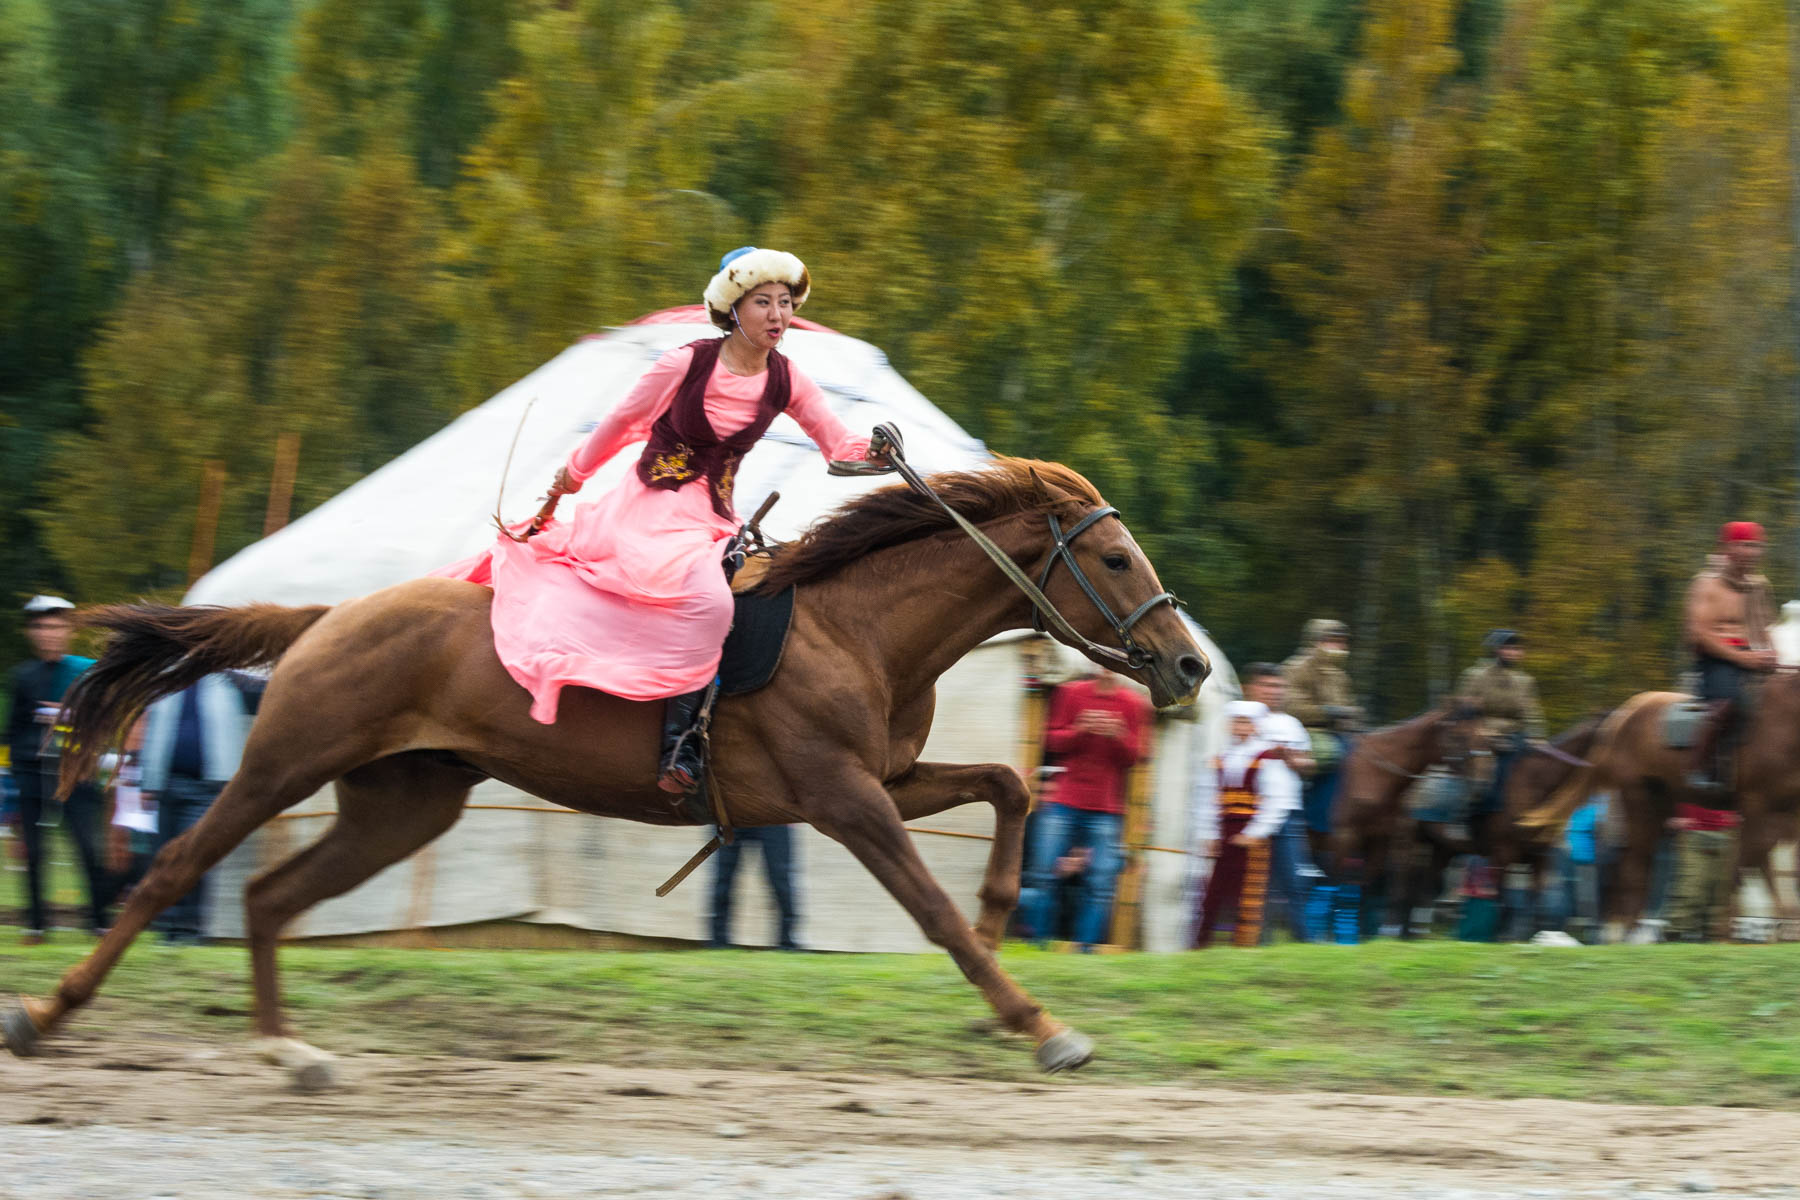 A performing woman riding a horse in Kyrgyzstan